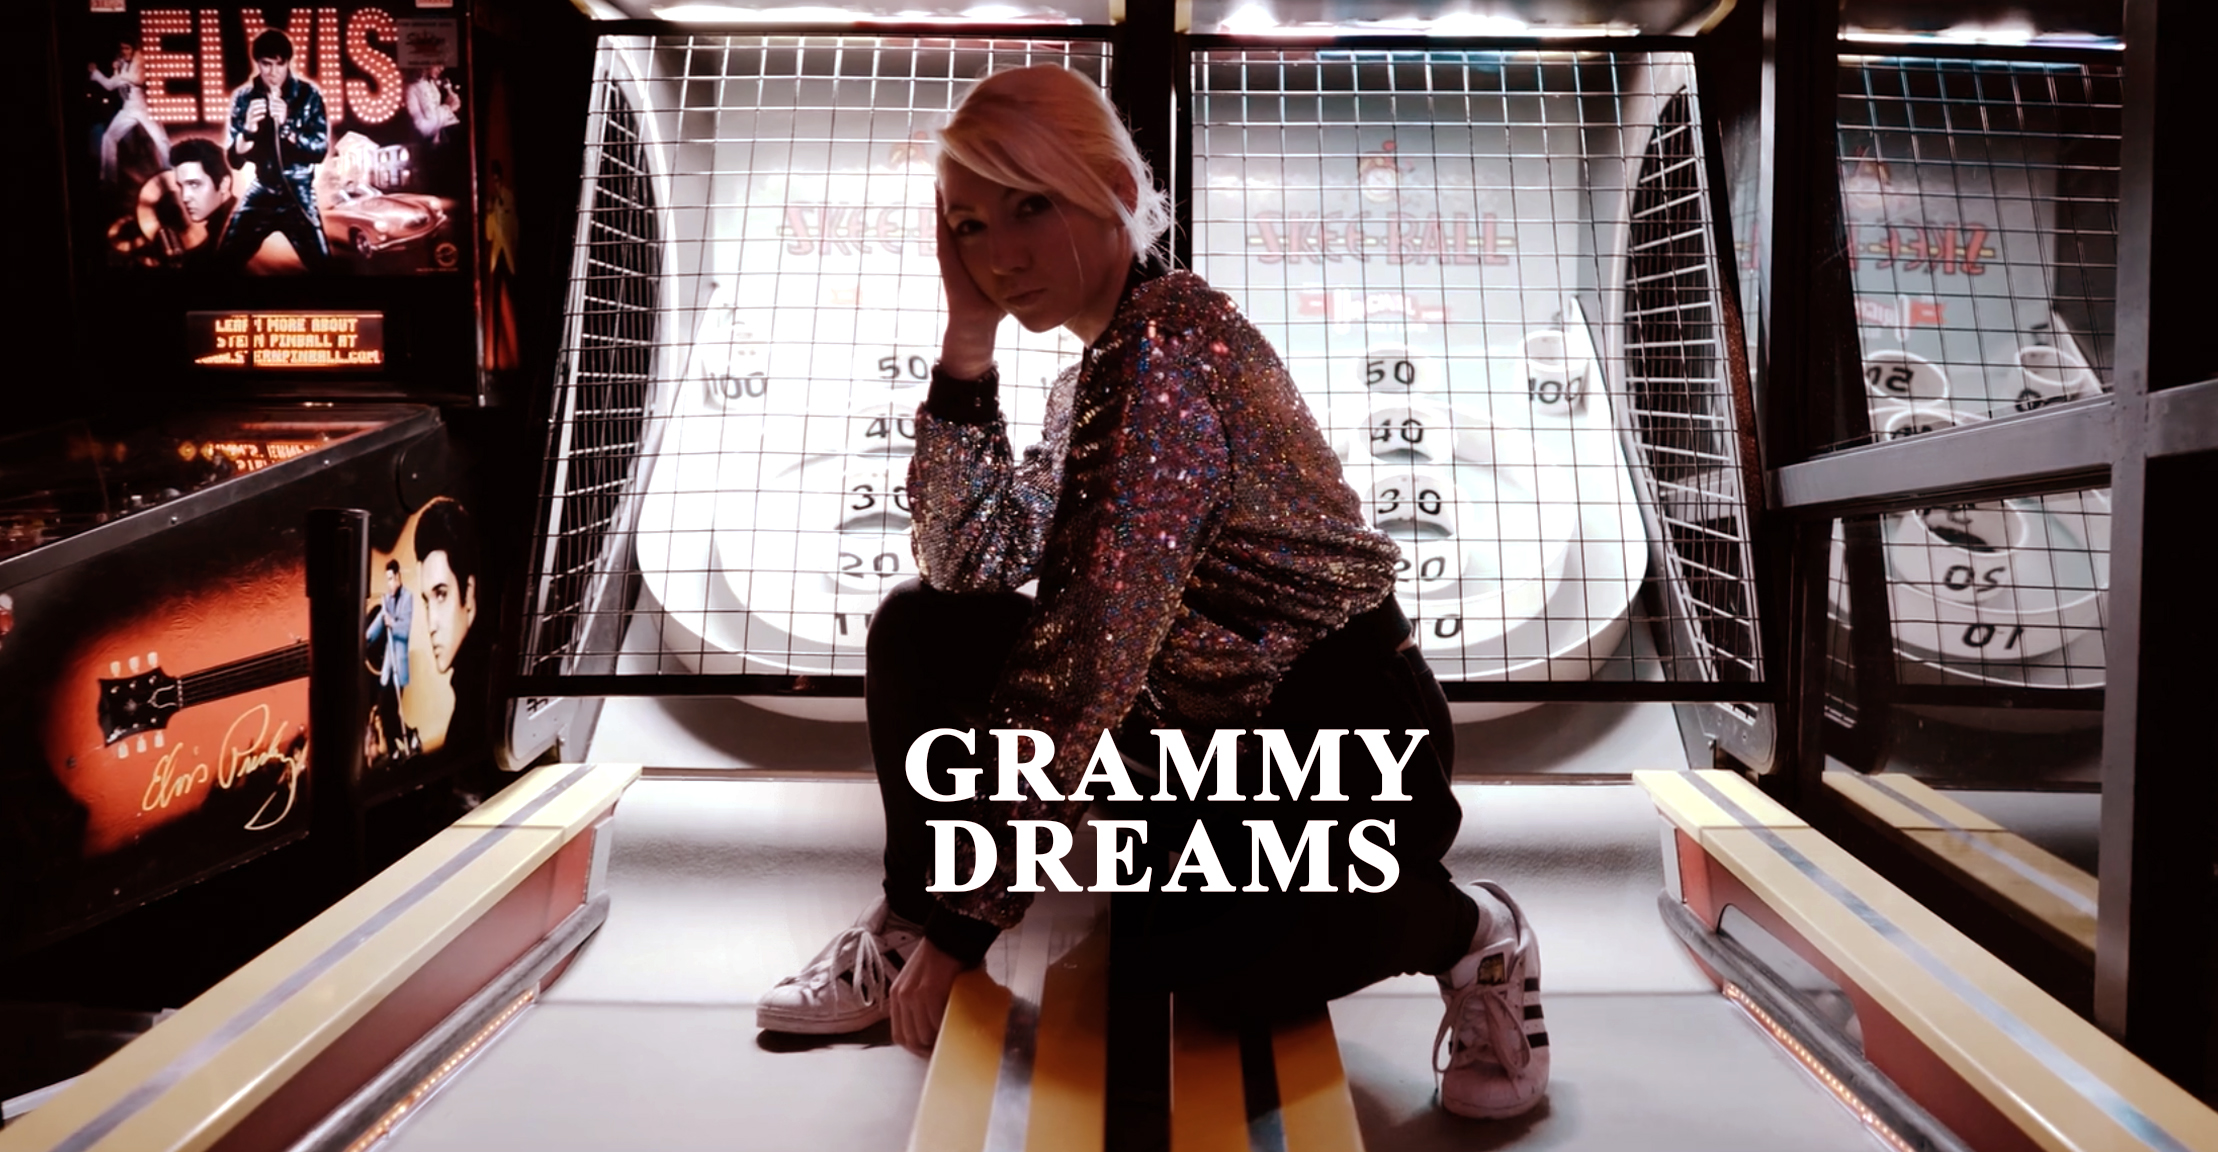 grammydreams.jpg